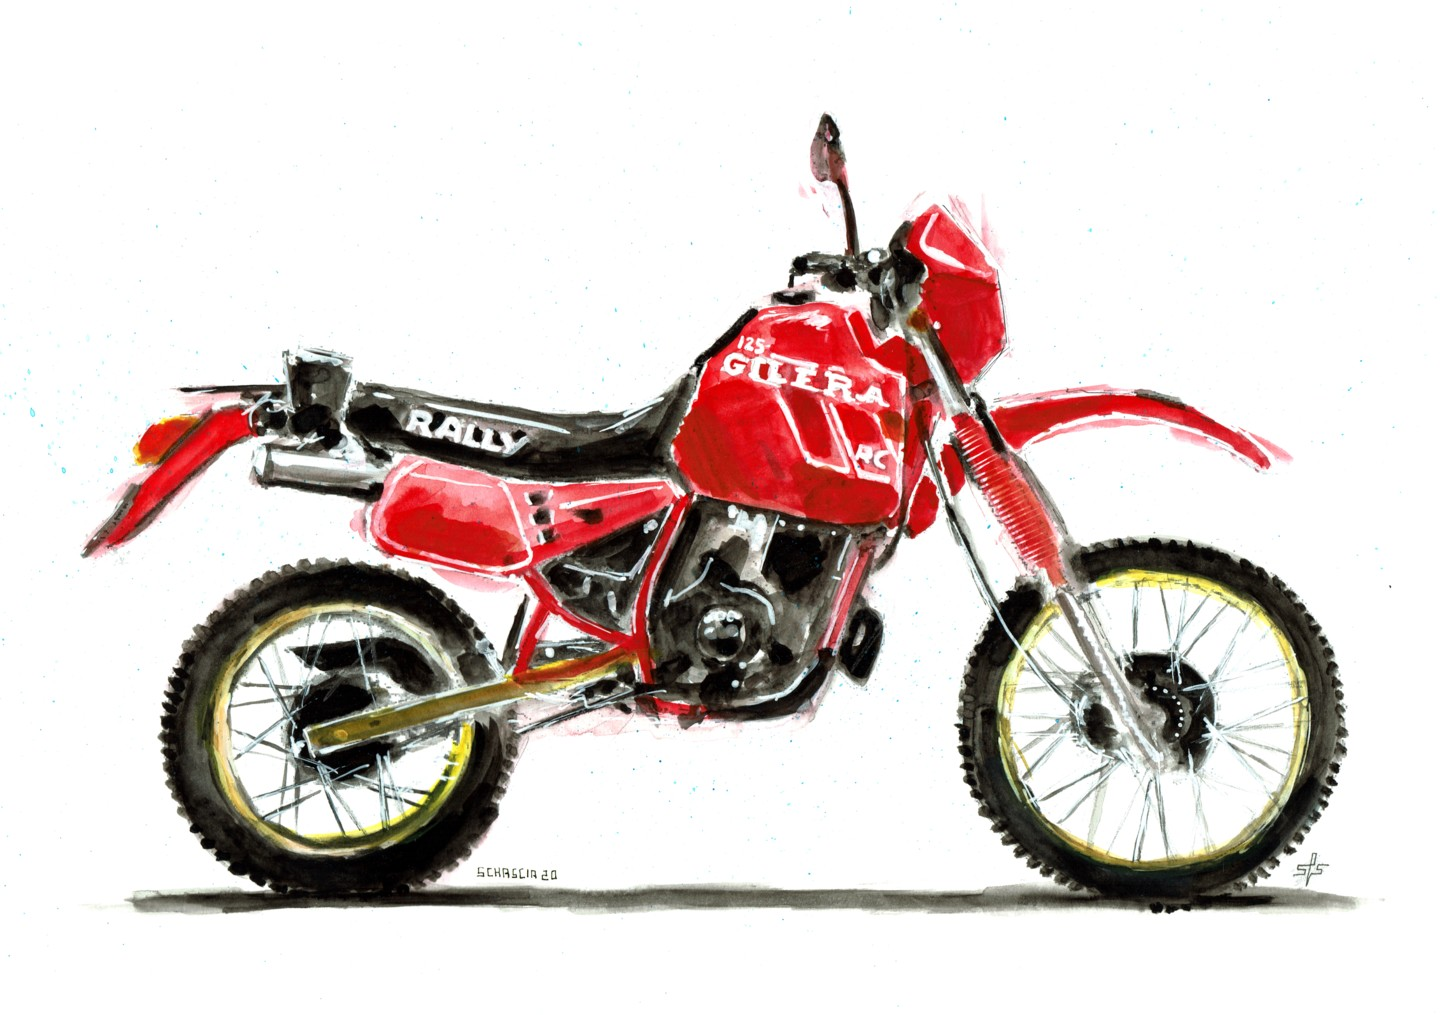 Schascia - Gilera RC 125 Rally